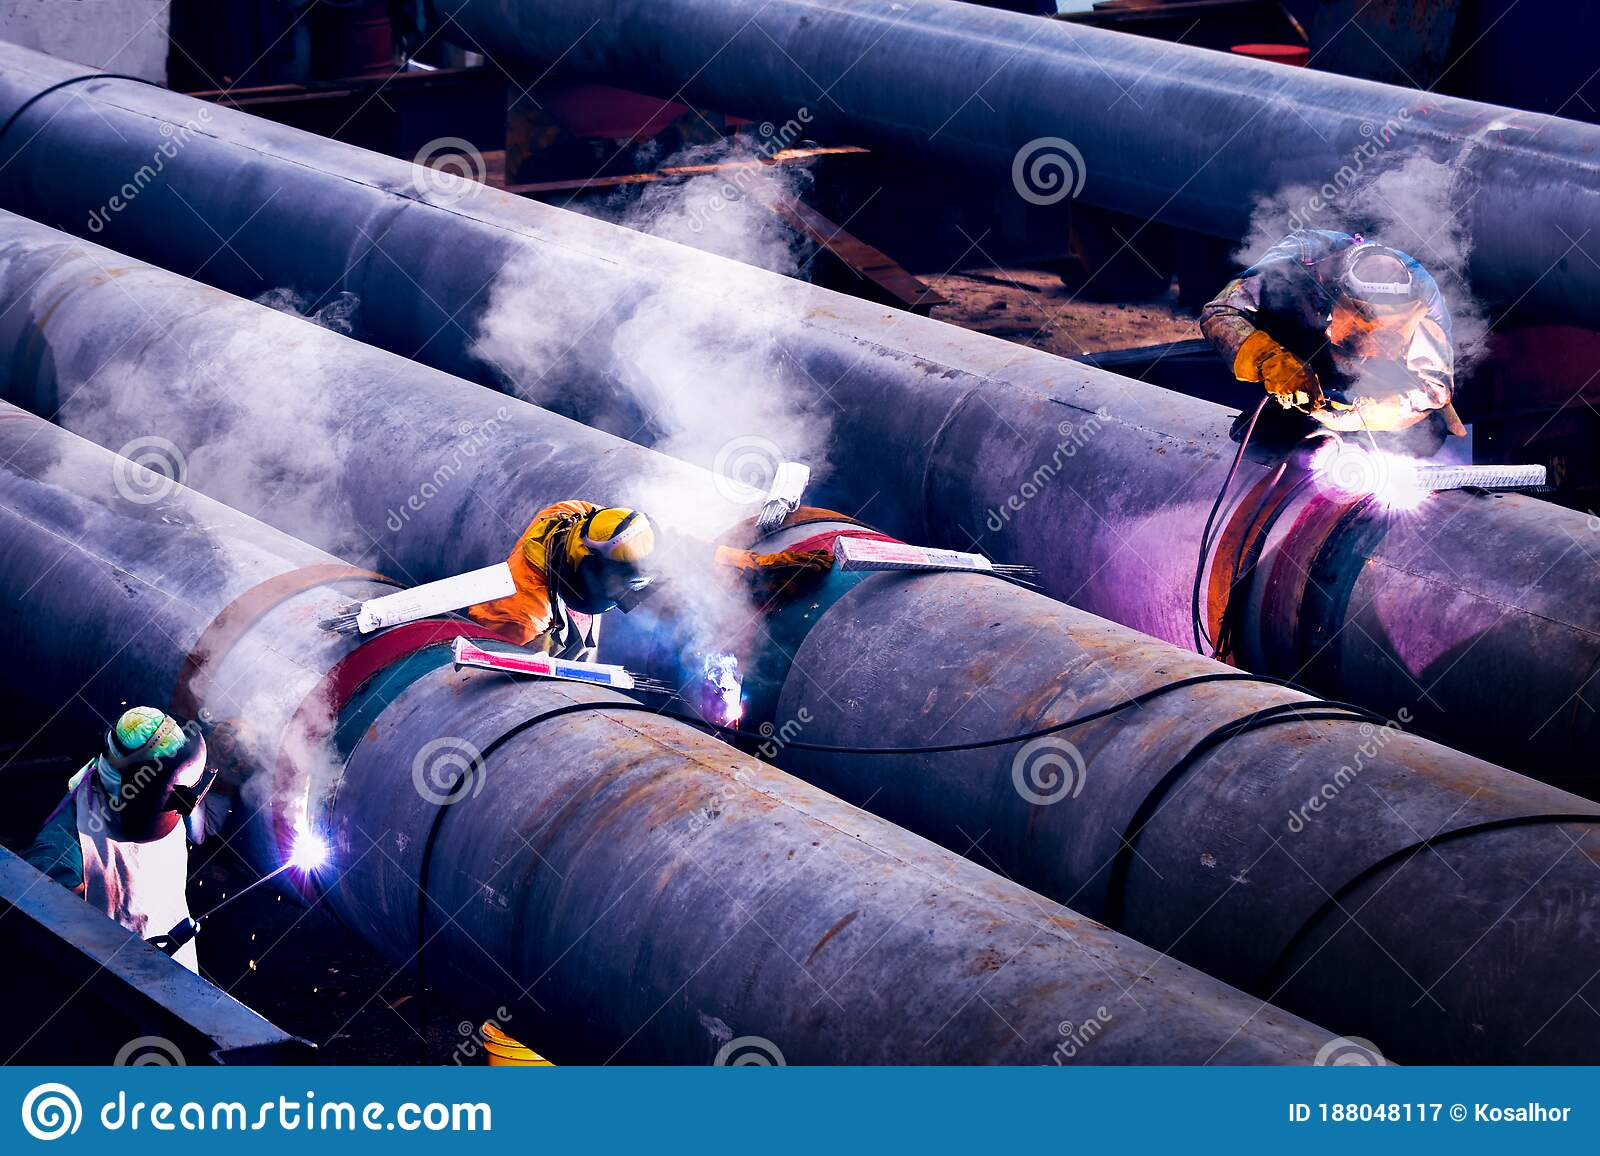 Worker With Protective Mask And Gloves Welding Big Piles At A Construction Site Hard Working Heavy Work Stock Image Image Of Laborer Improvisation 188048117